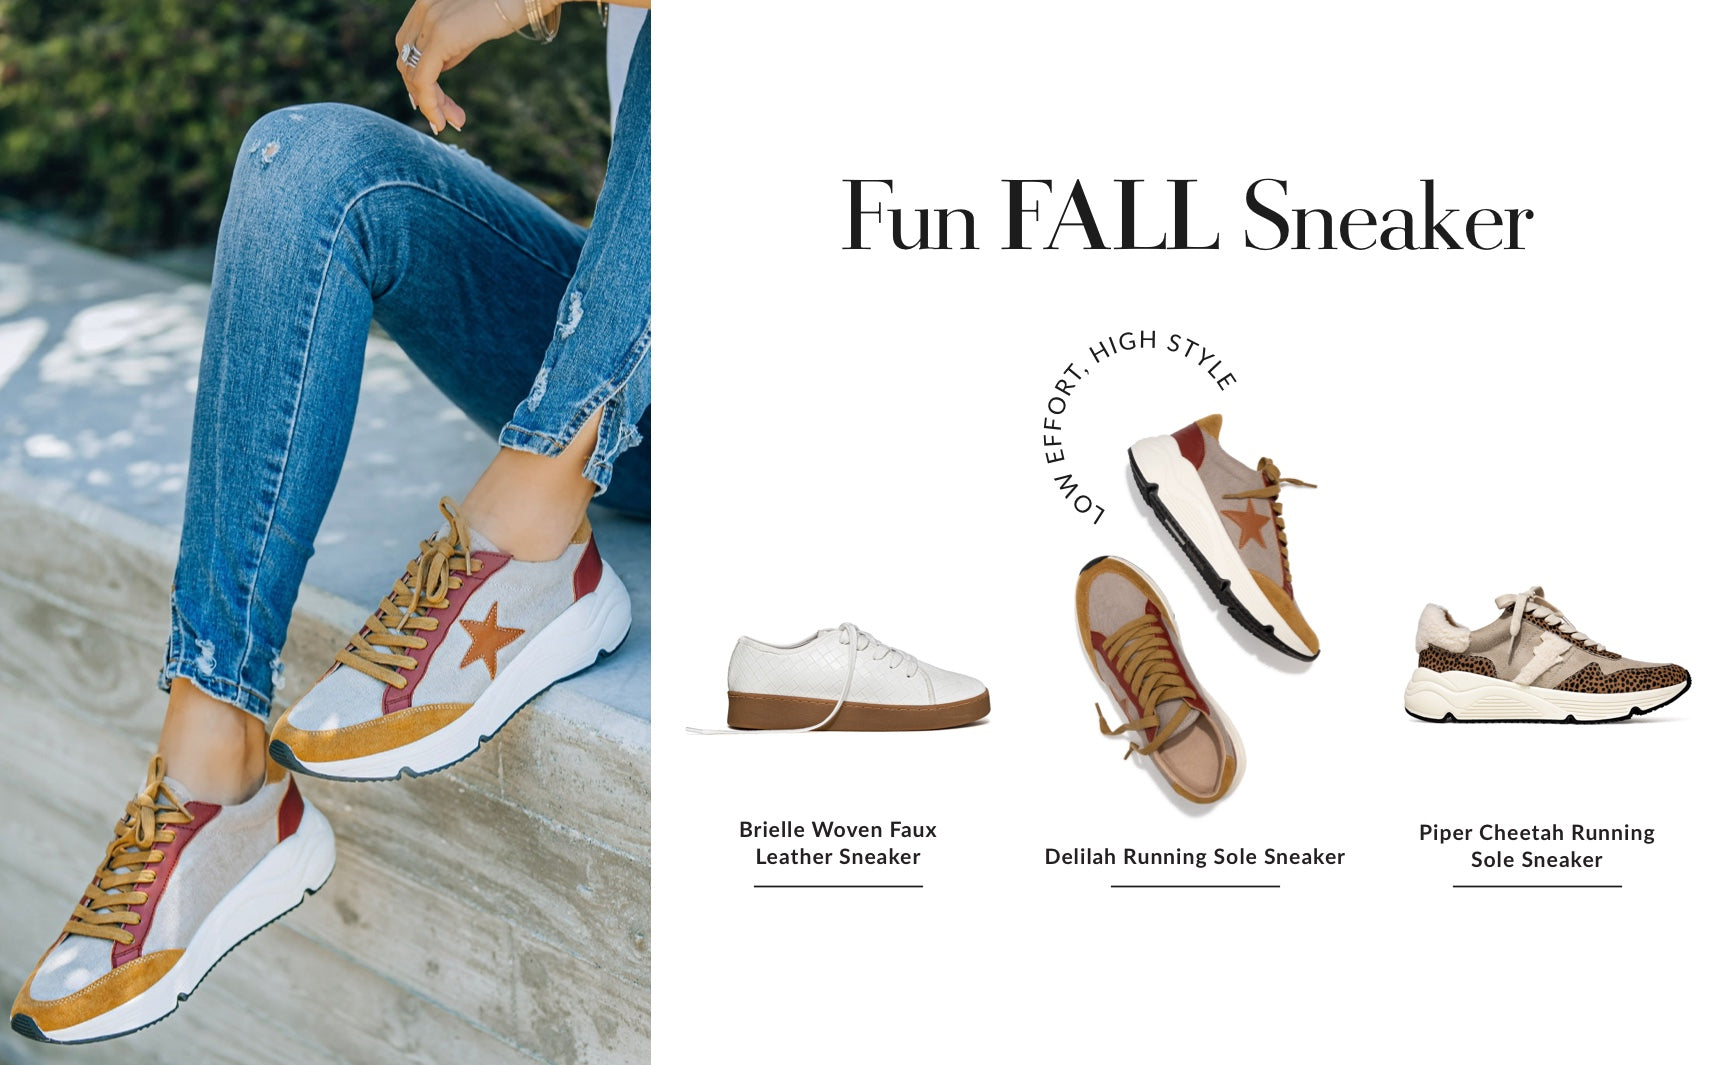 Activewear, but make it autumn themed! Toss out your basic white sneakers that are most likely covered in summertime concert dirt anyway. The fun fall sneaker introduces patterns and prints to play with. Your recipe for a lazy girl yet put together look: A matching workout set + a chunky cheetah printed sneaker. Low in effort, high in style. Shop Fun Fall Sneakers